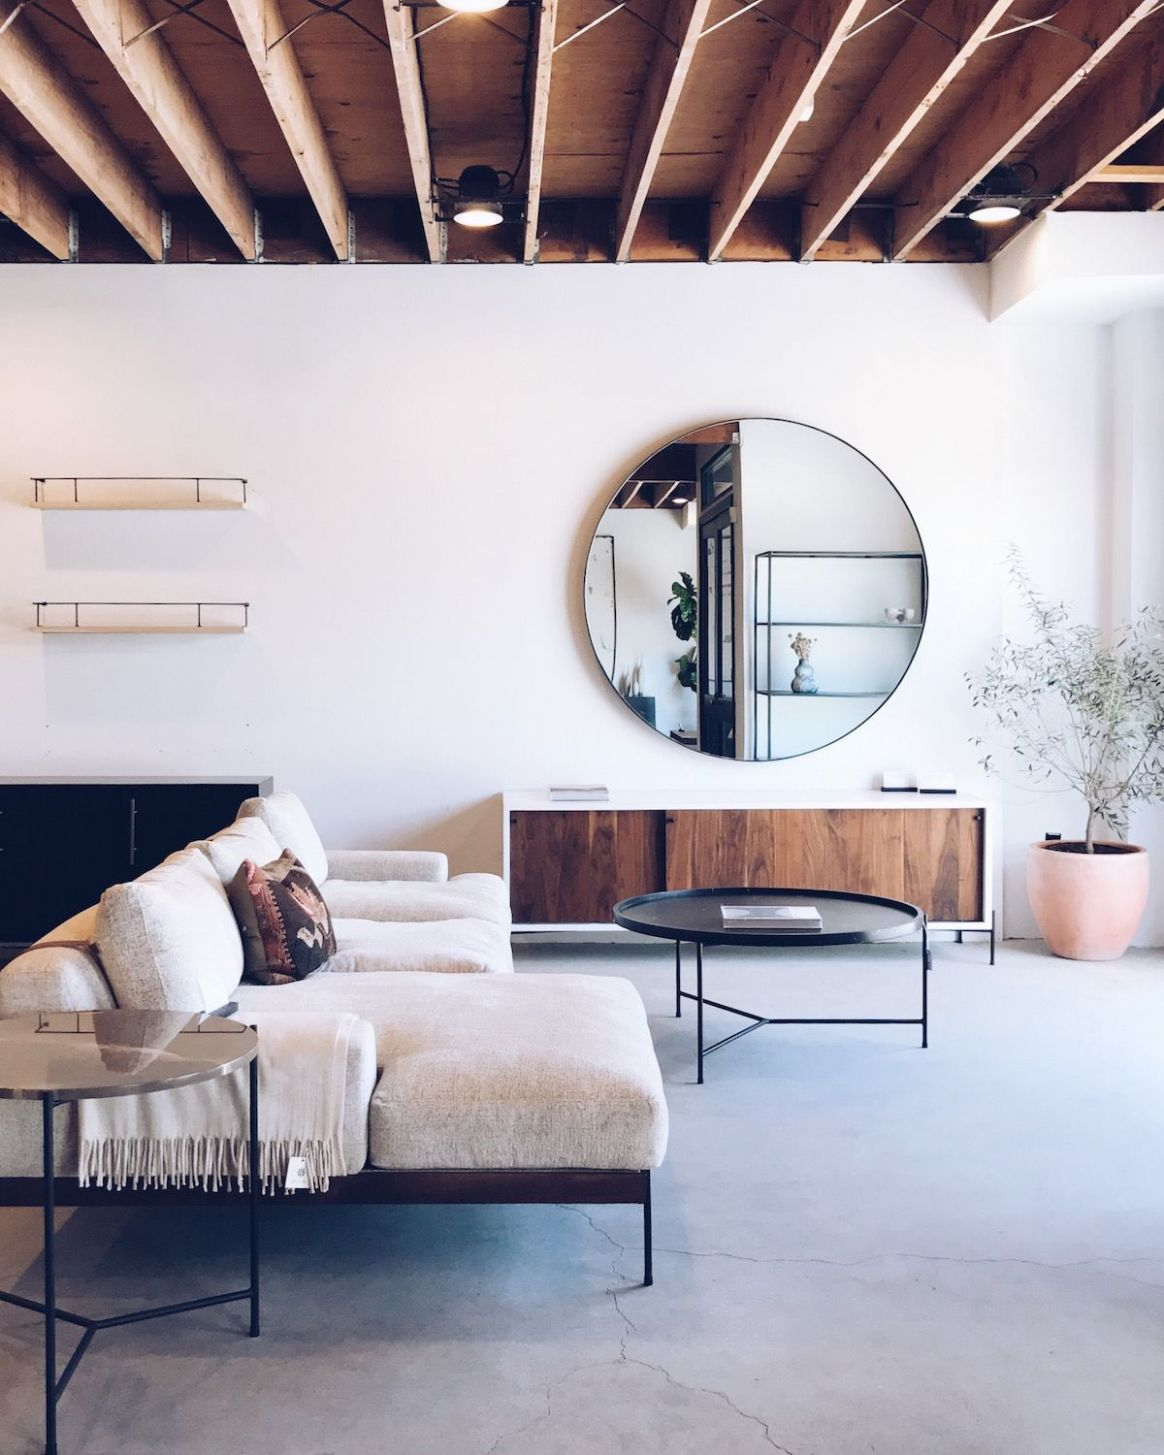 Travel Guide: 10 Hours in LA (With images) | Living room mirrors ...